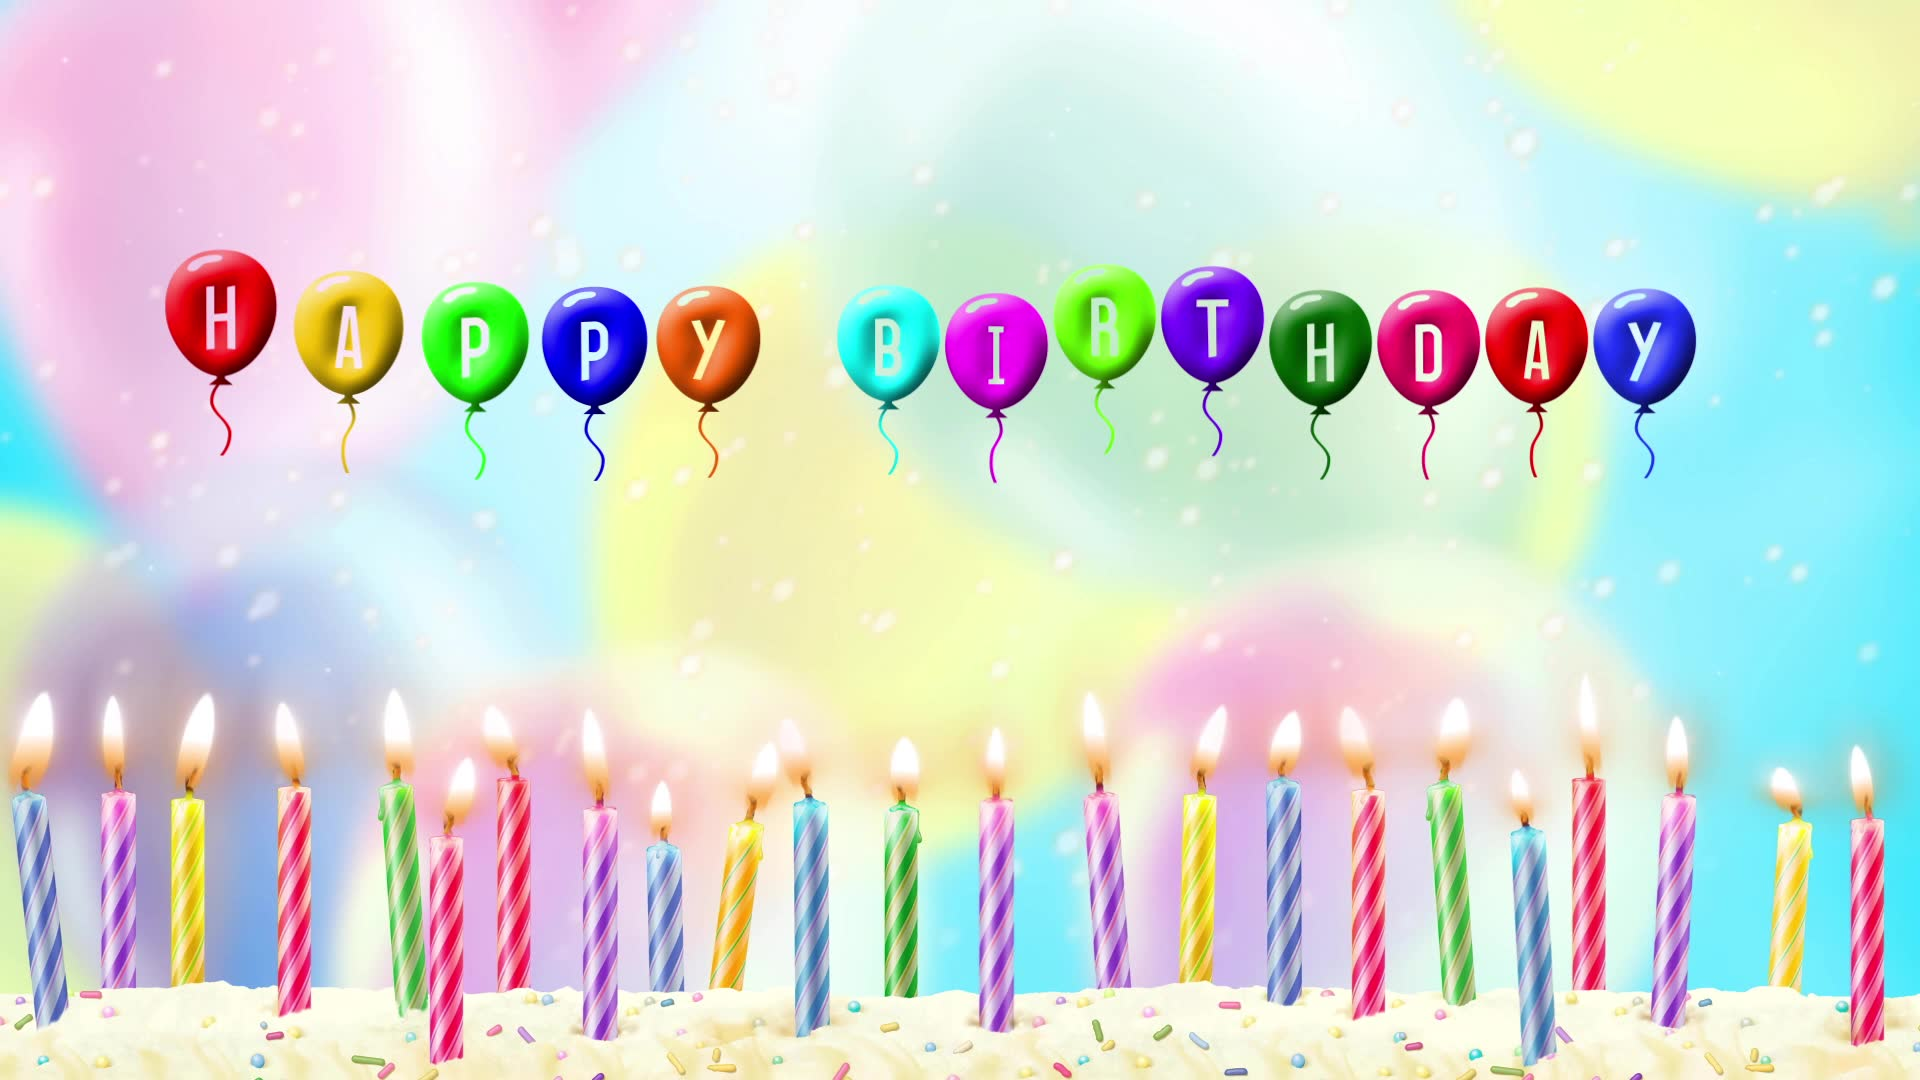 Daily Cards Happy Birthday Happy Birthday Balloons HD Images 1920x1080